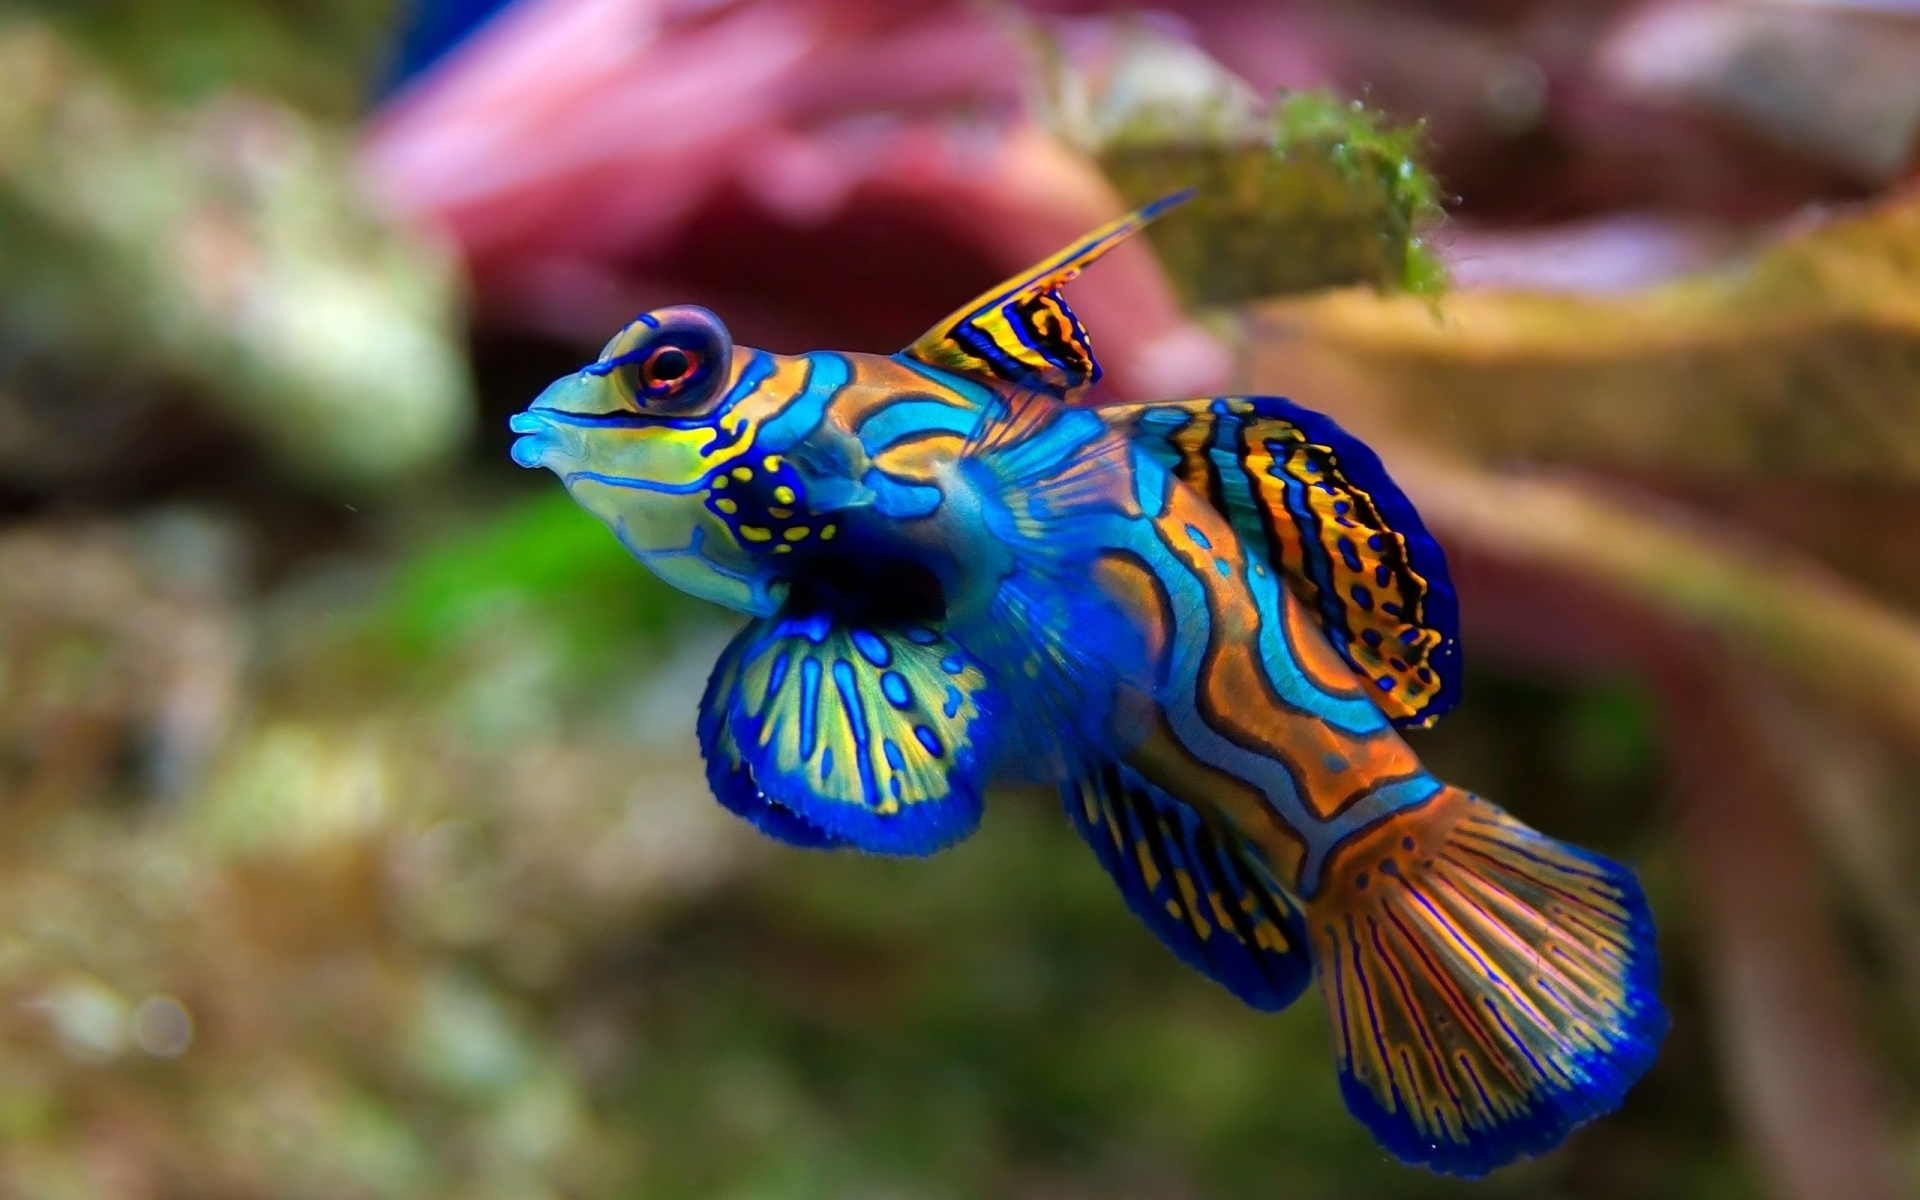 Brown's review focused especially on bony fish. The level of mental complexity they displayed he found to be on a par with most other vertebrates, ...